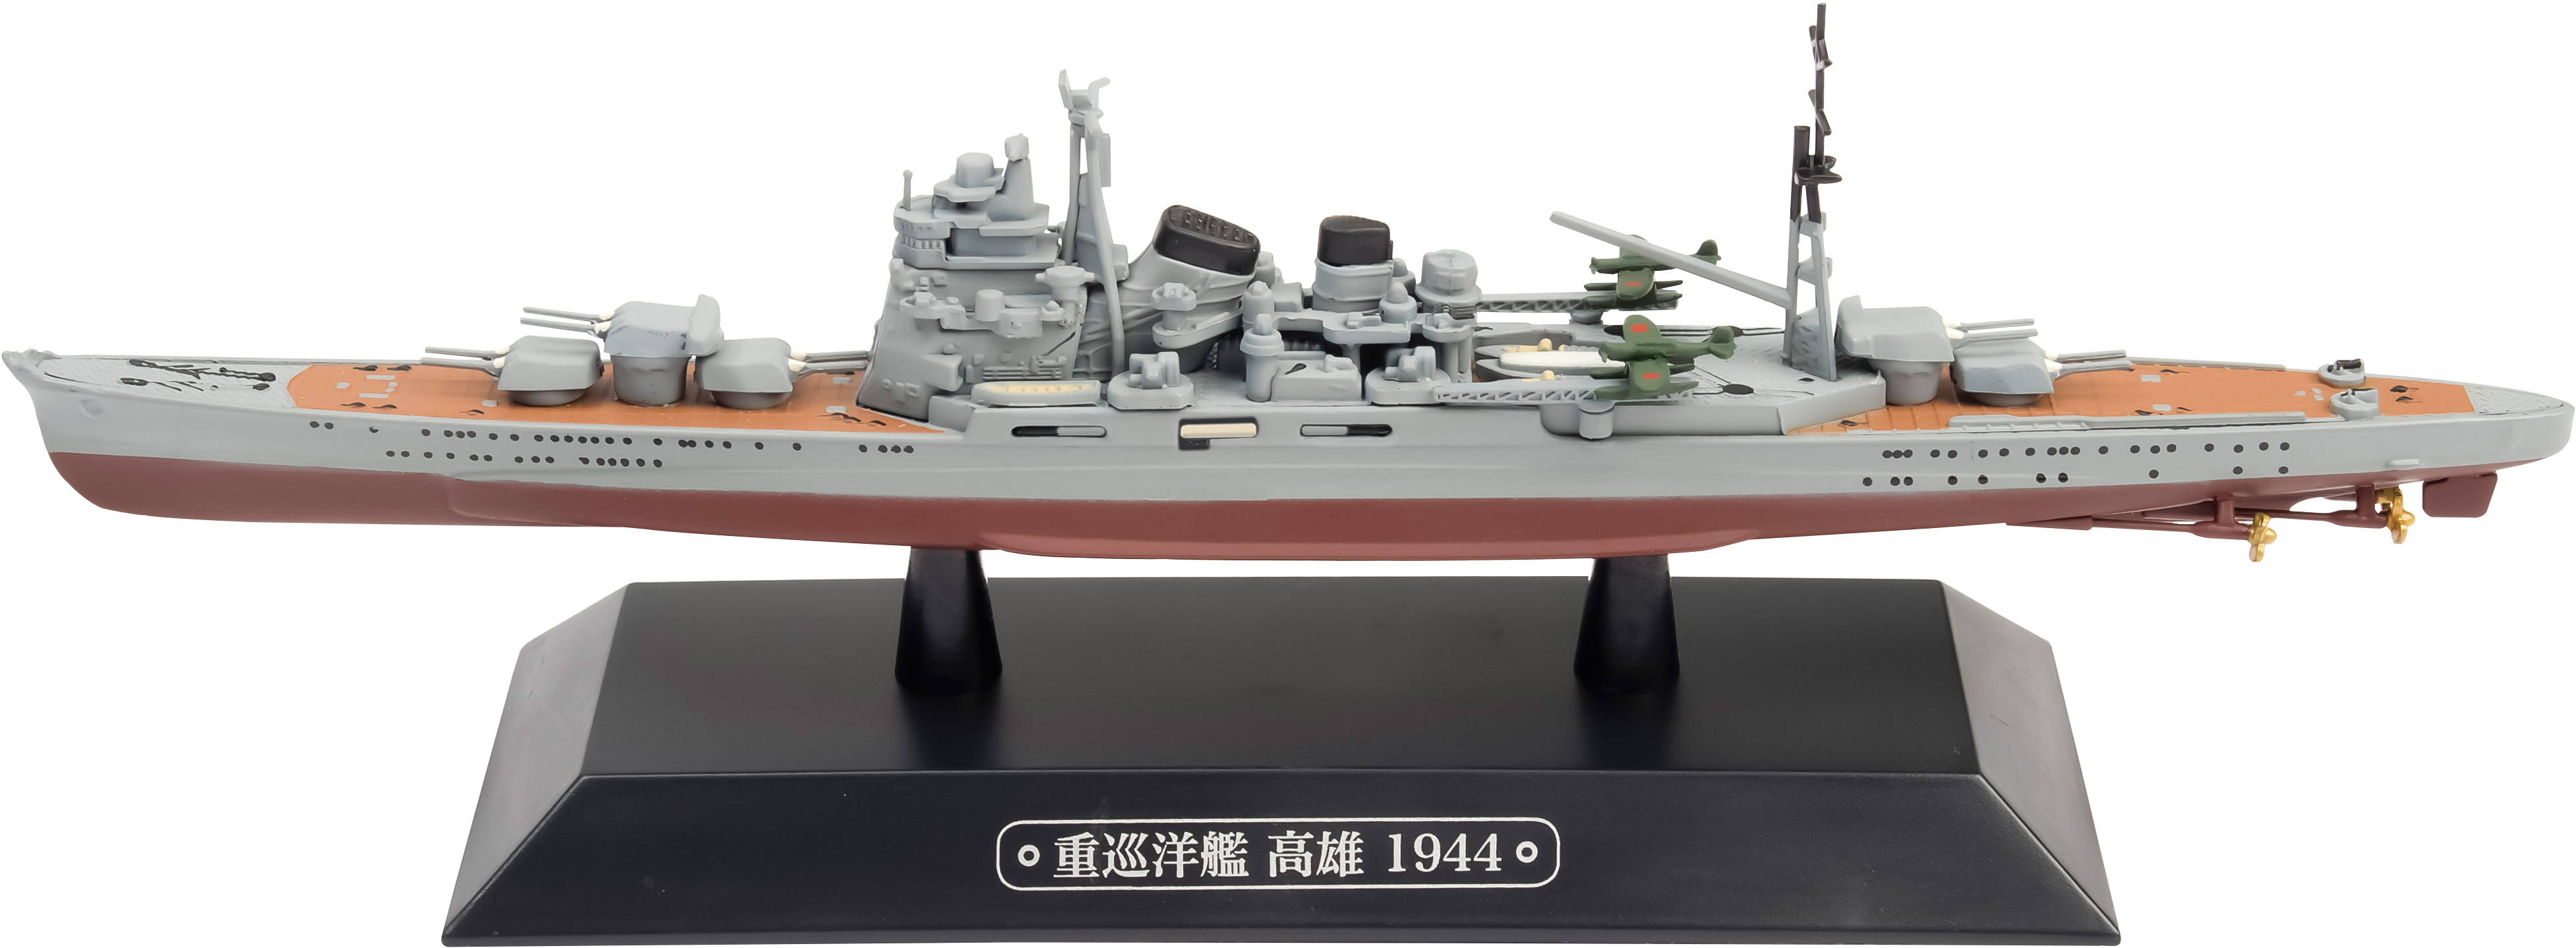 EMGC36 IJN Heavy Cruiser Takao 1944 Scale 1:1100 - Click Image to Close